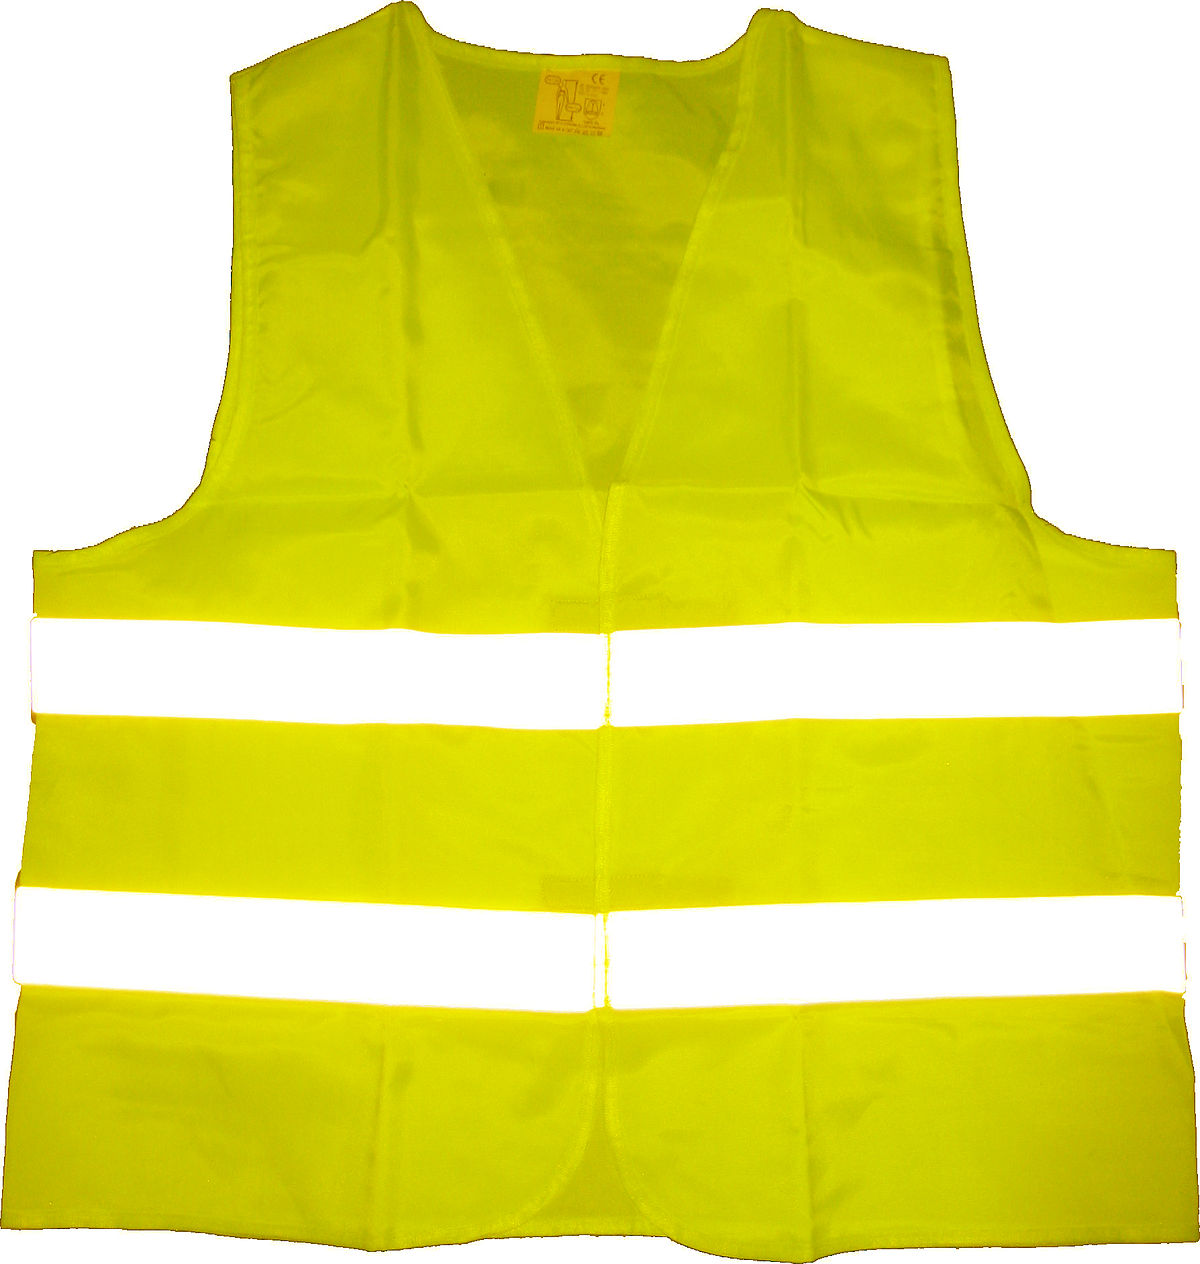 Gilet de securite obligatoirement jaune